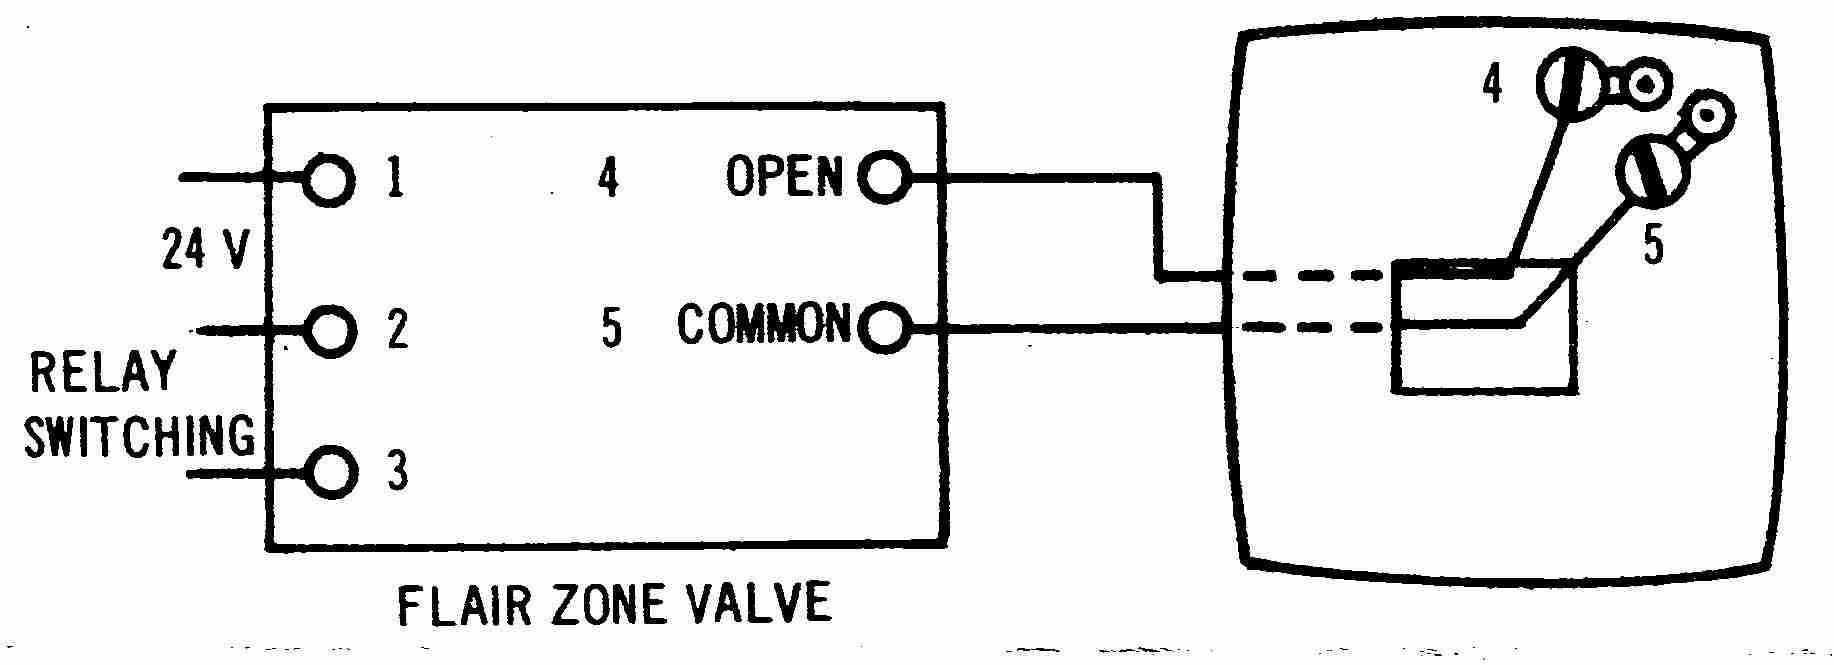 Flair2w_001_DJFc1 room thermostat wiring diagrams for hvac systems air conditioner relay wiring diagram at mifinder.co